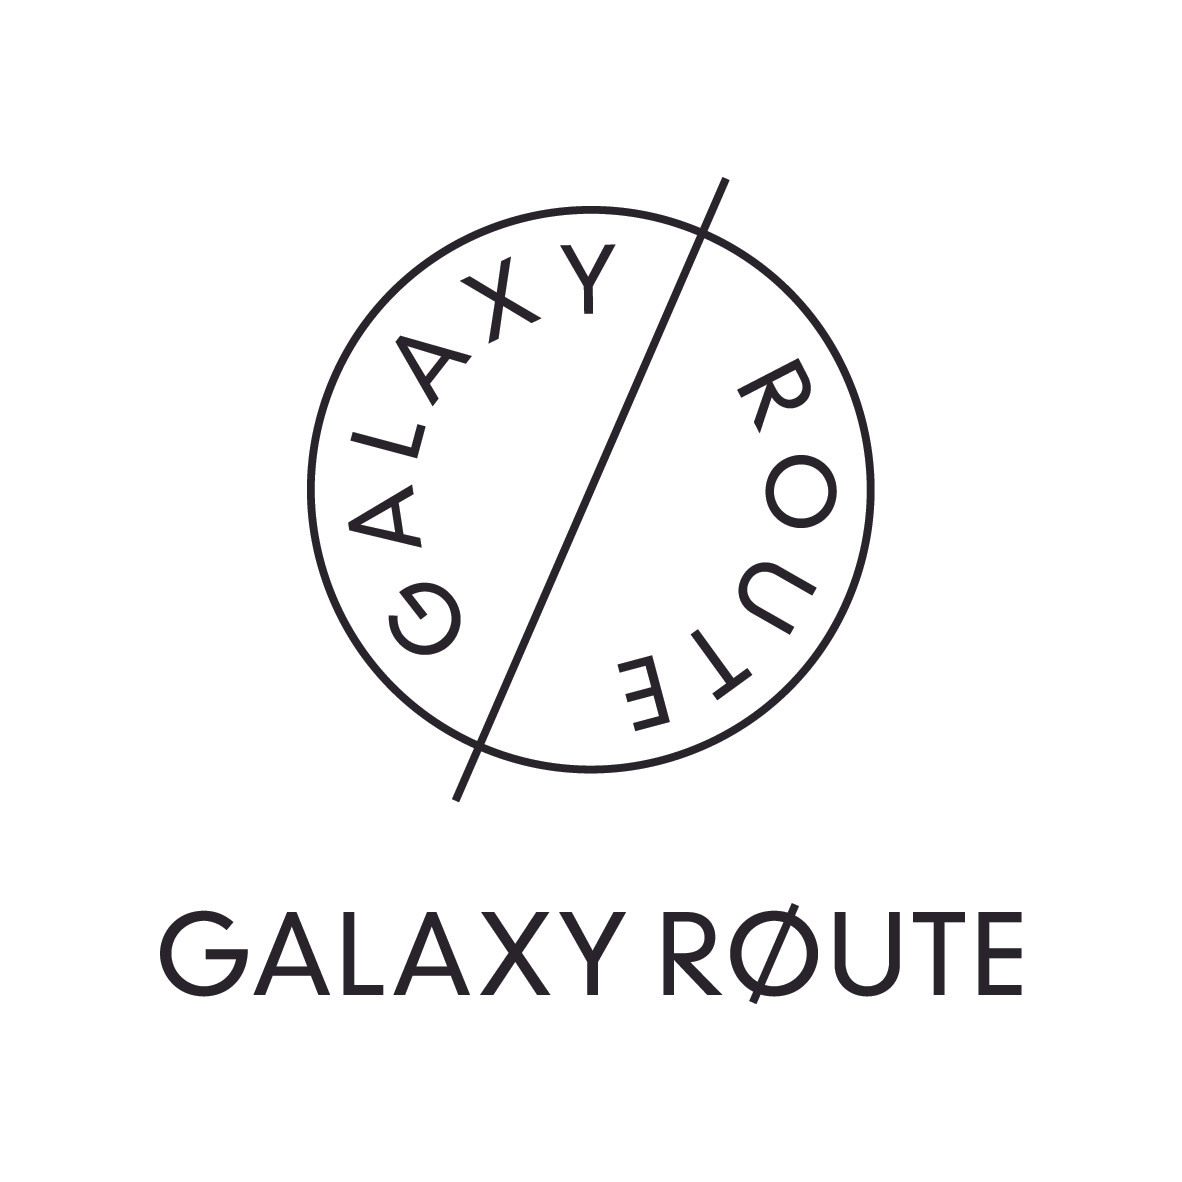 GALAXY ROUTE